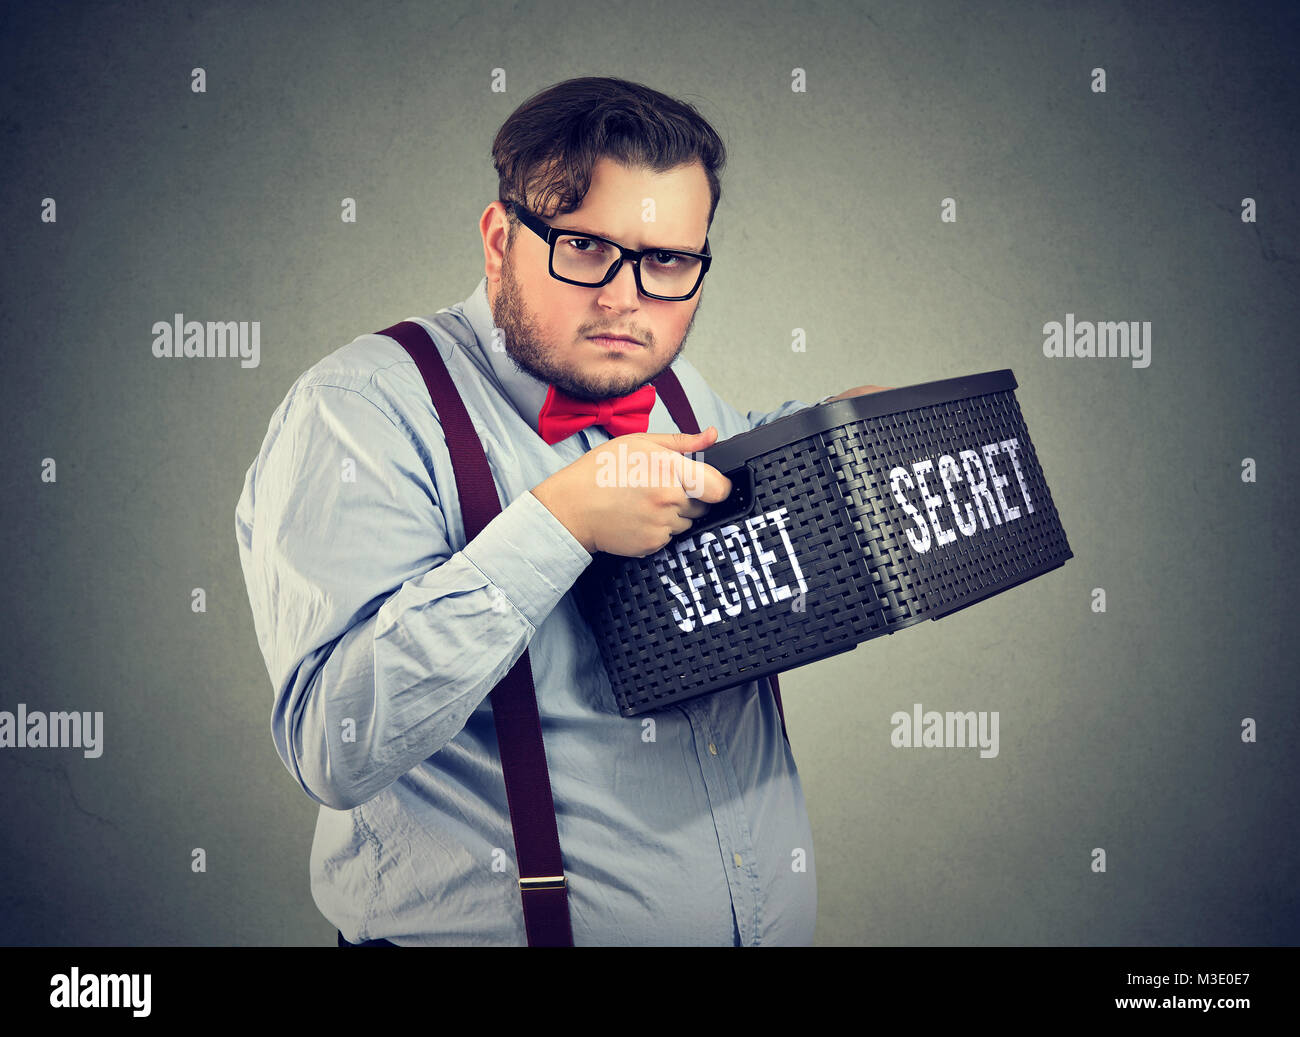 Chubby man in eyeglasses hiding secret in box unwilling to share looking suspiciously at camera. - Stock Image